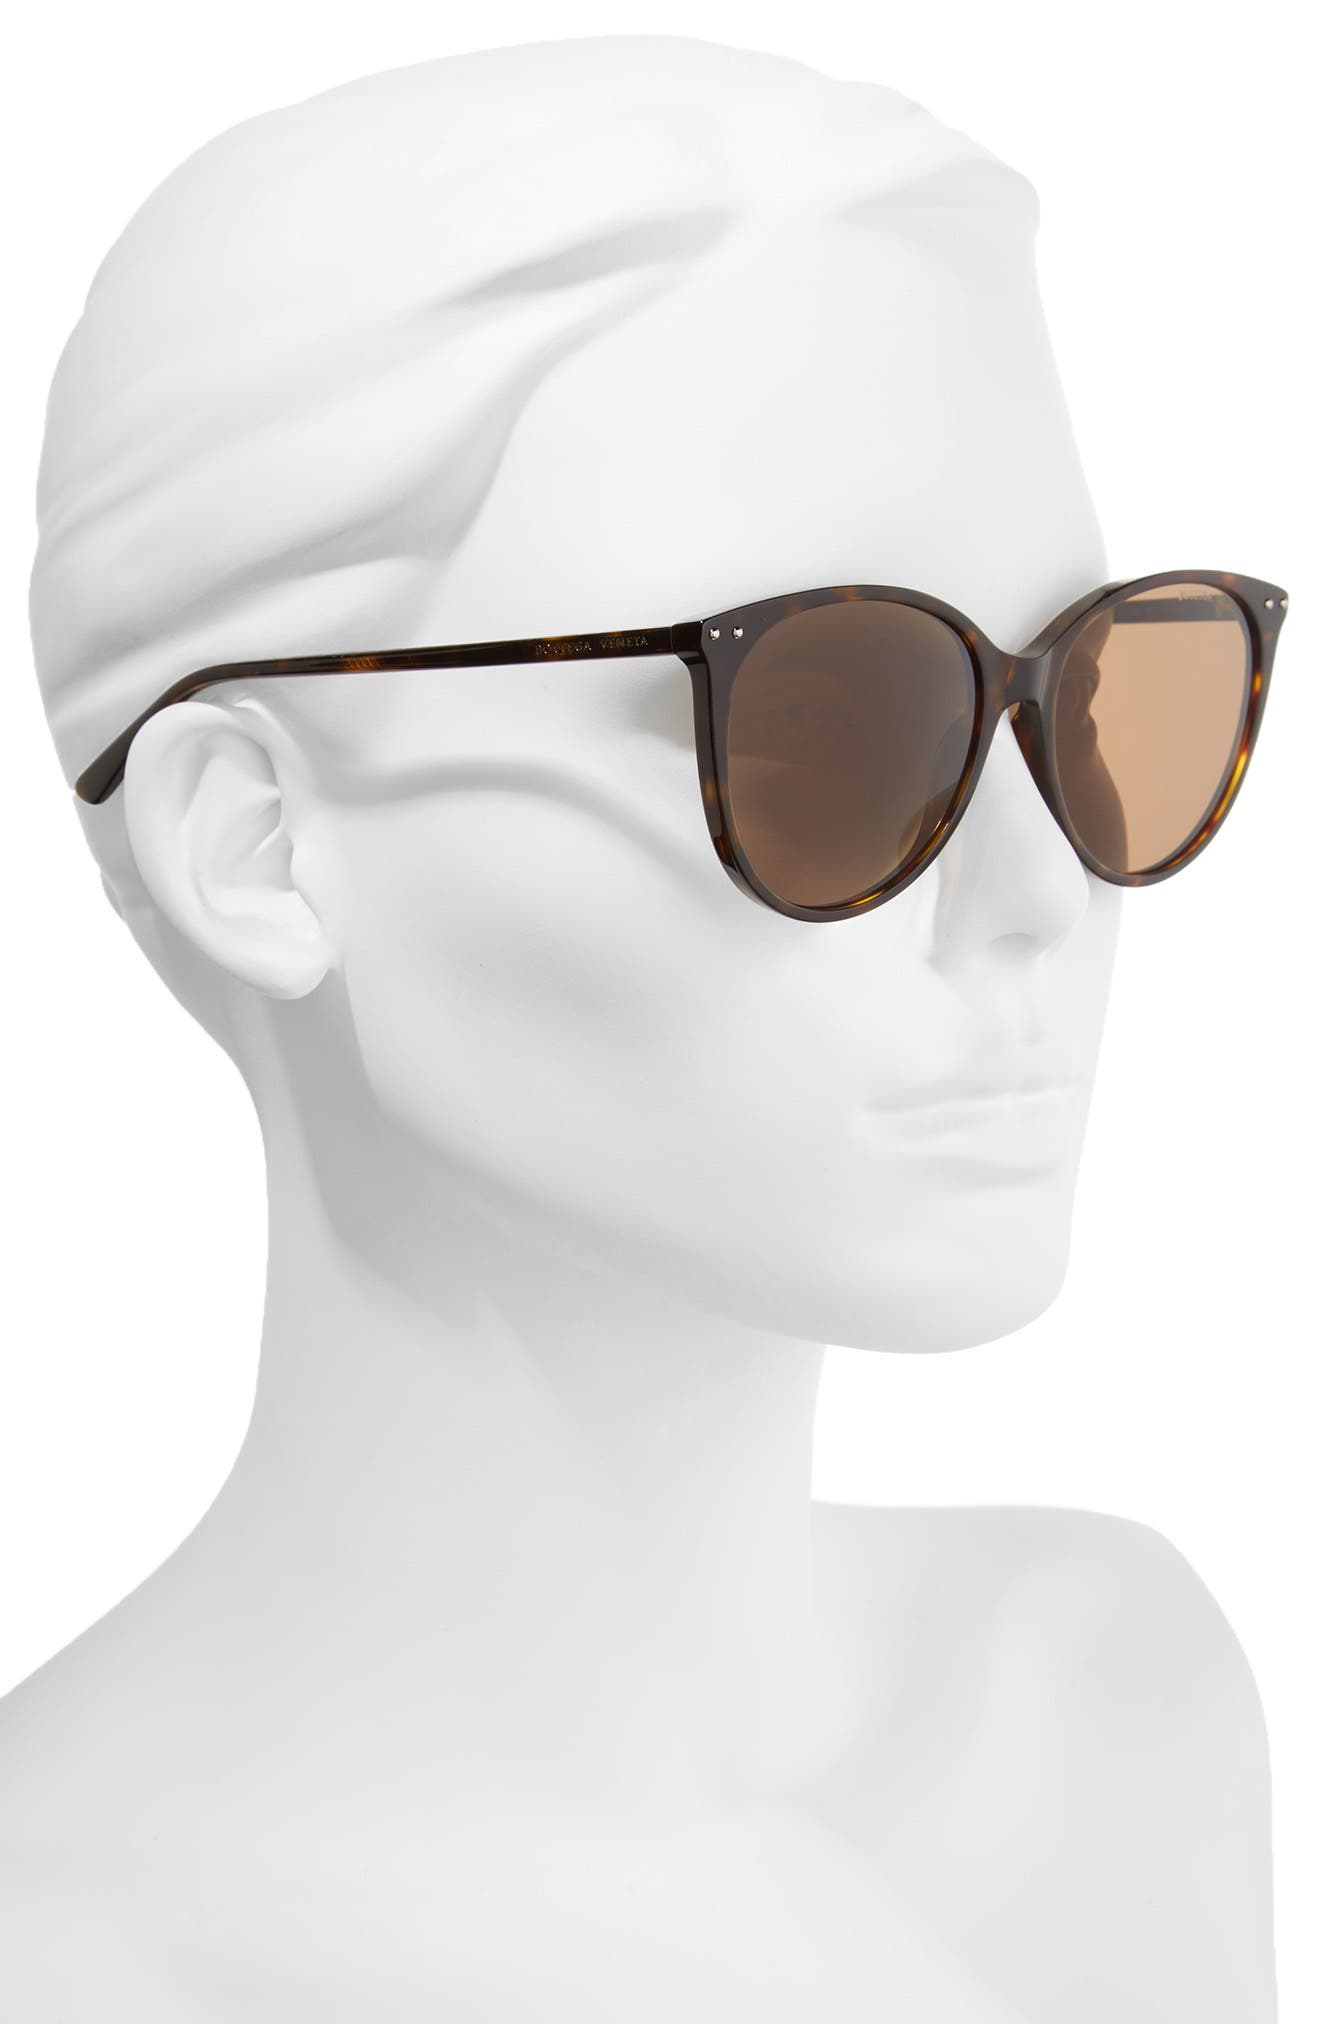 55mm Cat Eye Sunglasses,                             Alternate thumbnail 2, color,                             Dark Havana